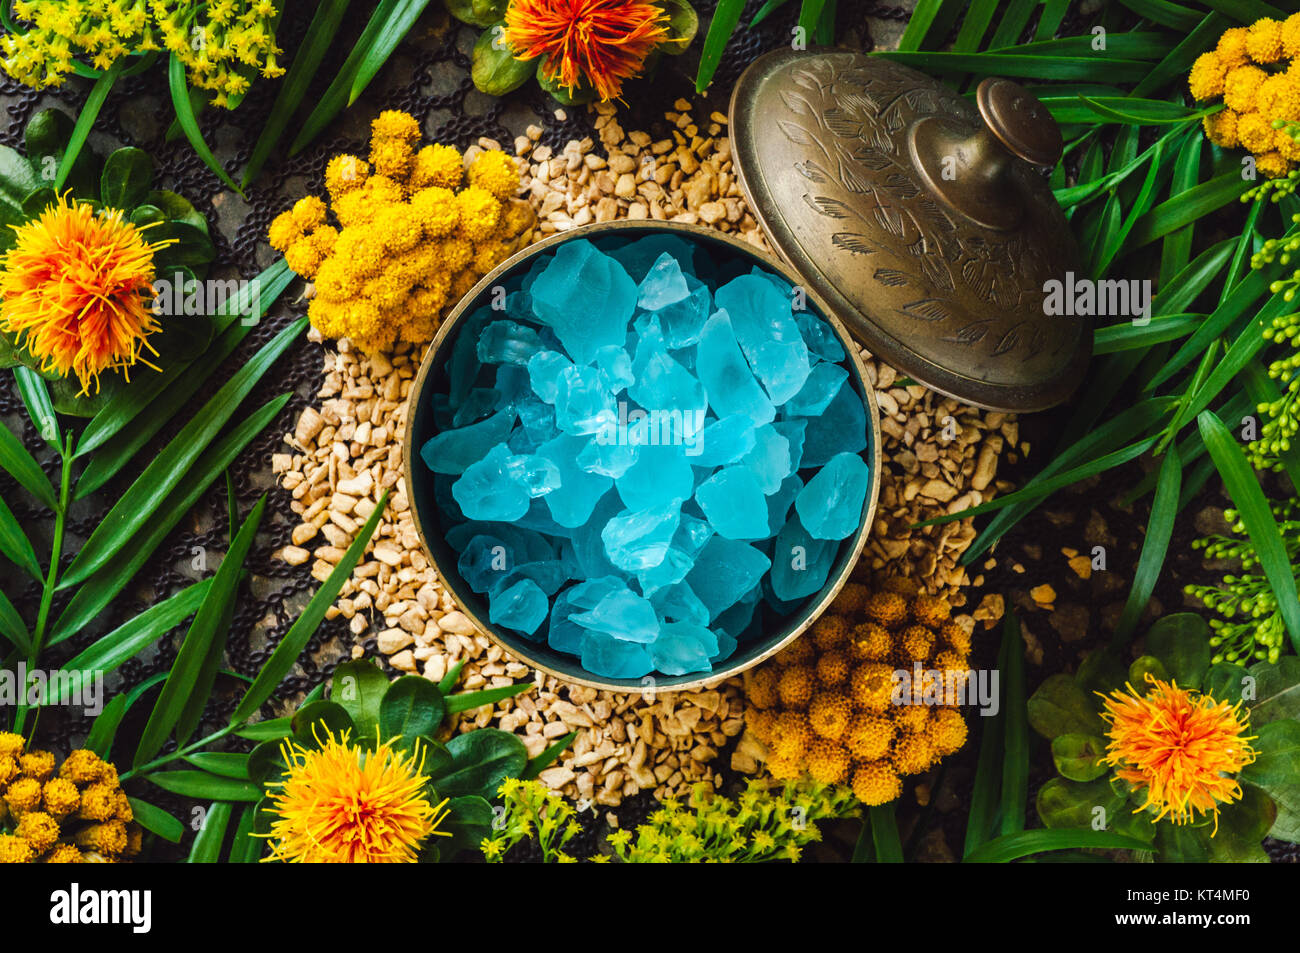 Brass Container with Blue Glass on Ginger Spill - Stock Image